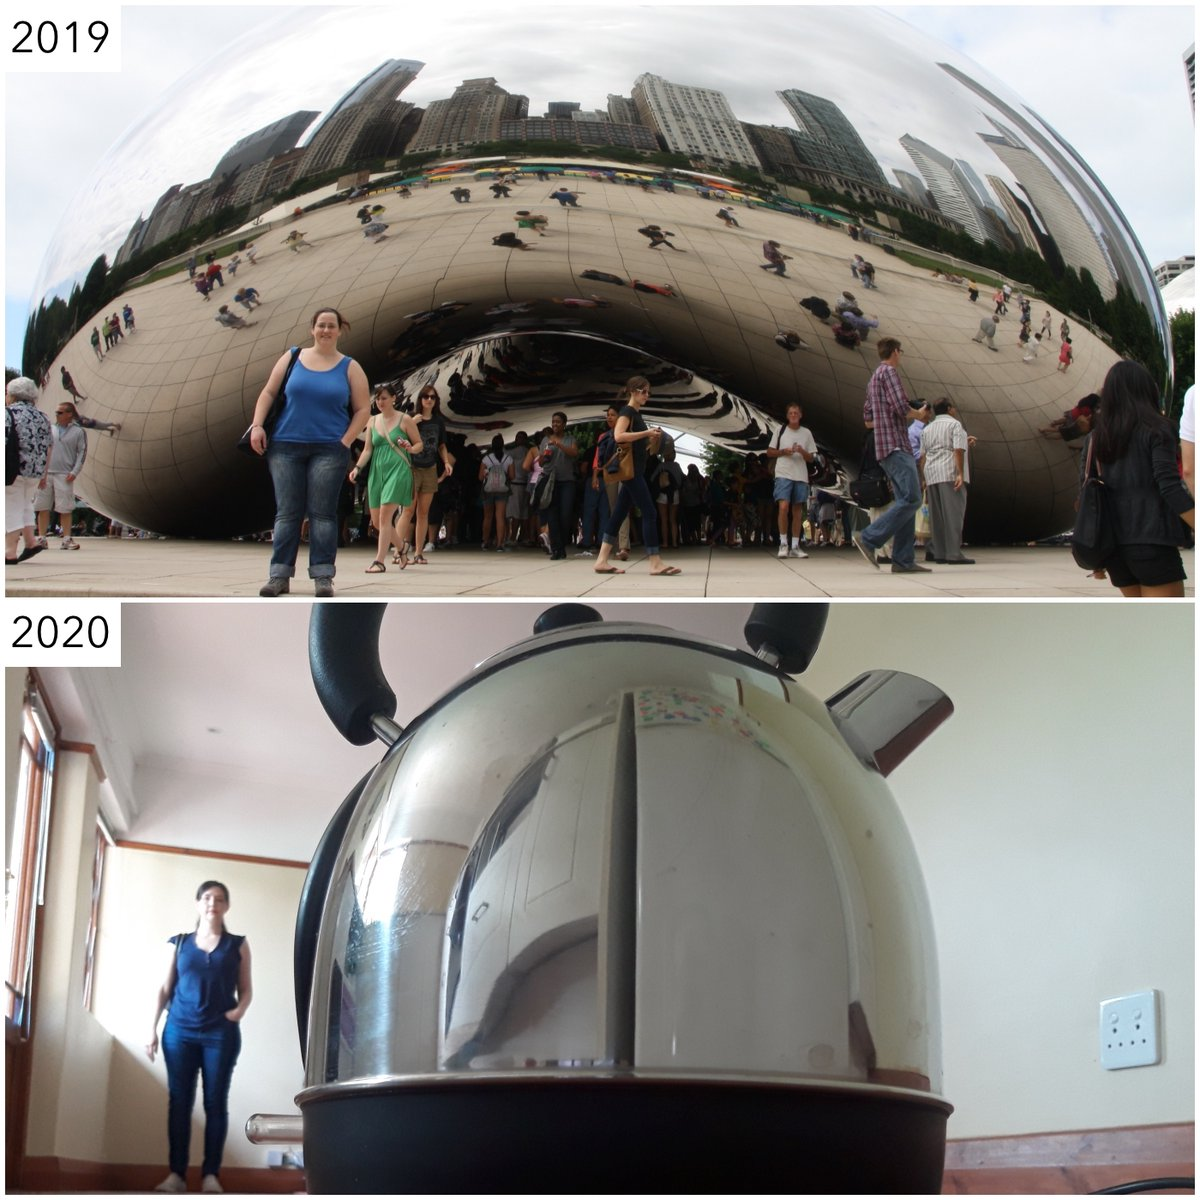 Thank you, Sat.1 Frühstücksfernshen, for featuring me on today's show and for challenging me to recreate a picture with Chicago's Cloud Gate. I don't know what I would have done if I didn't have this kettle!  #covidtravel #cloudgate #travelrecreation #asseenontv